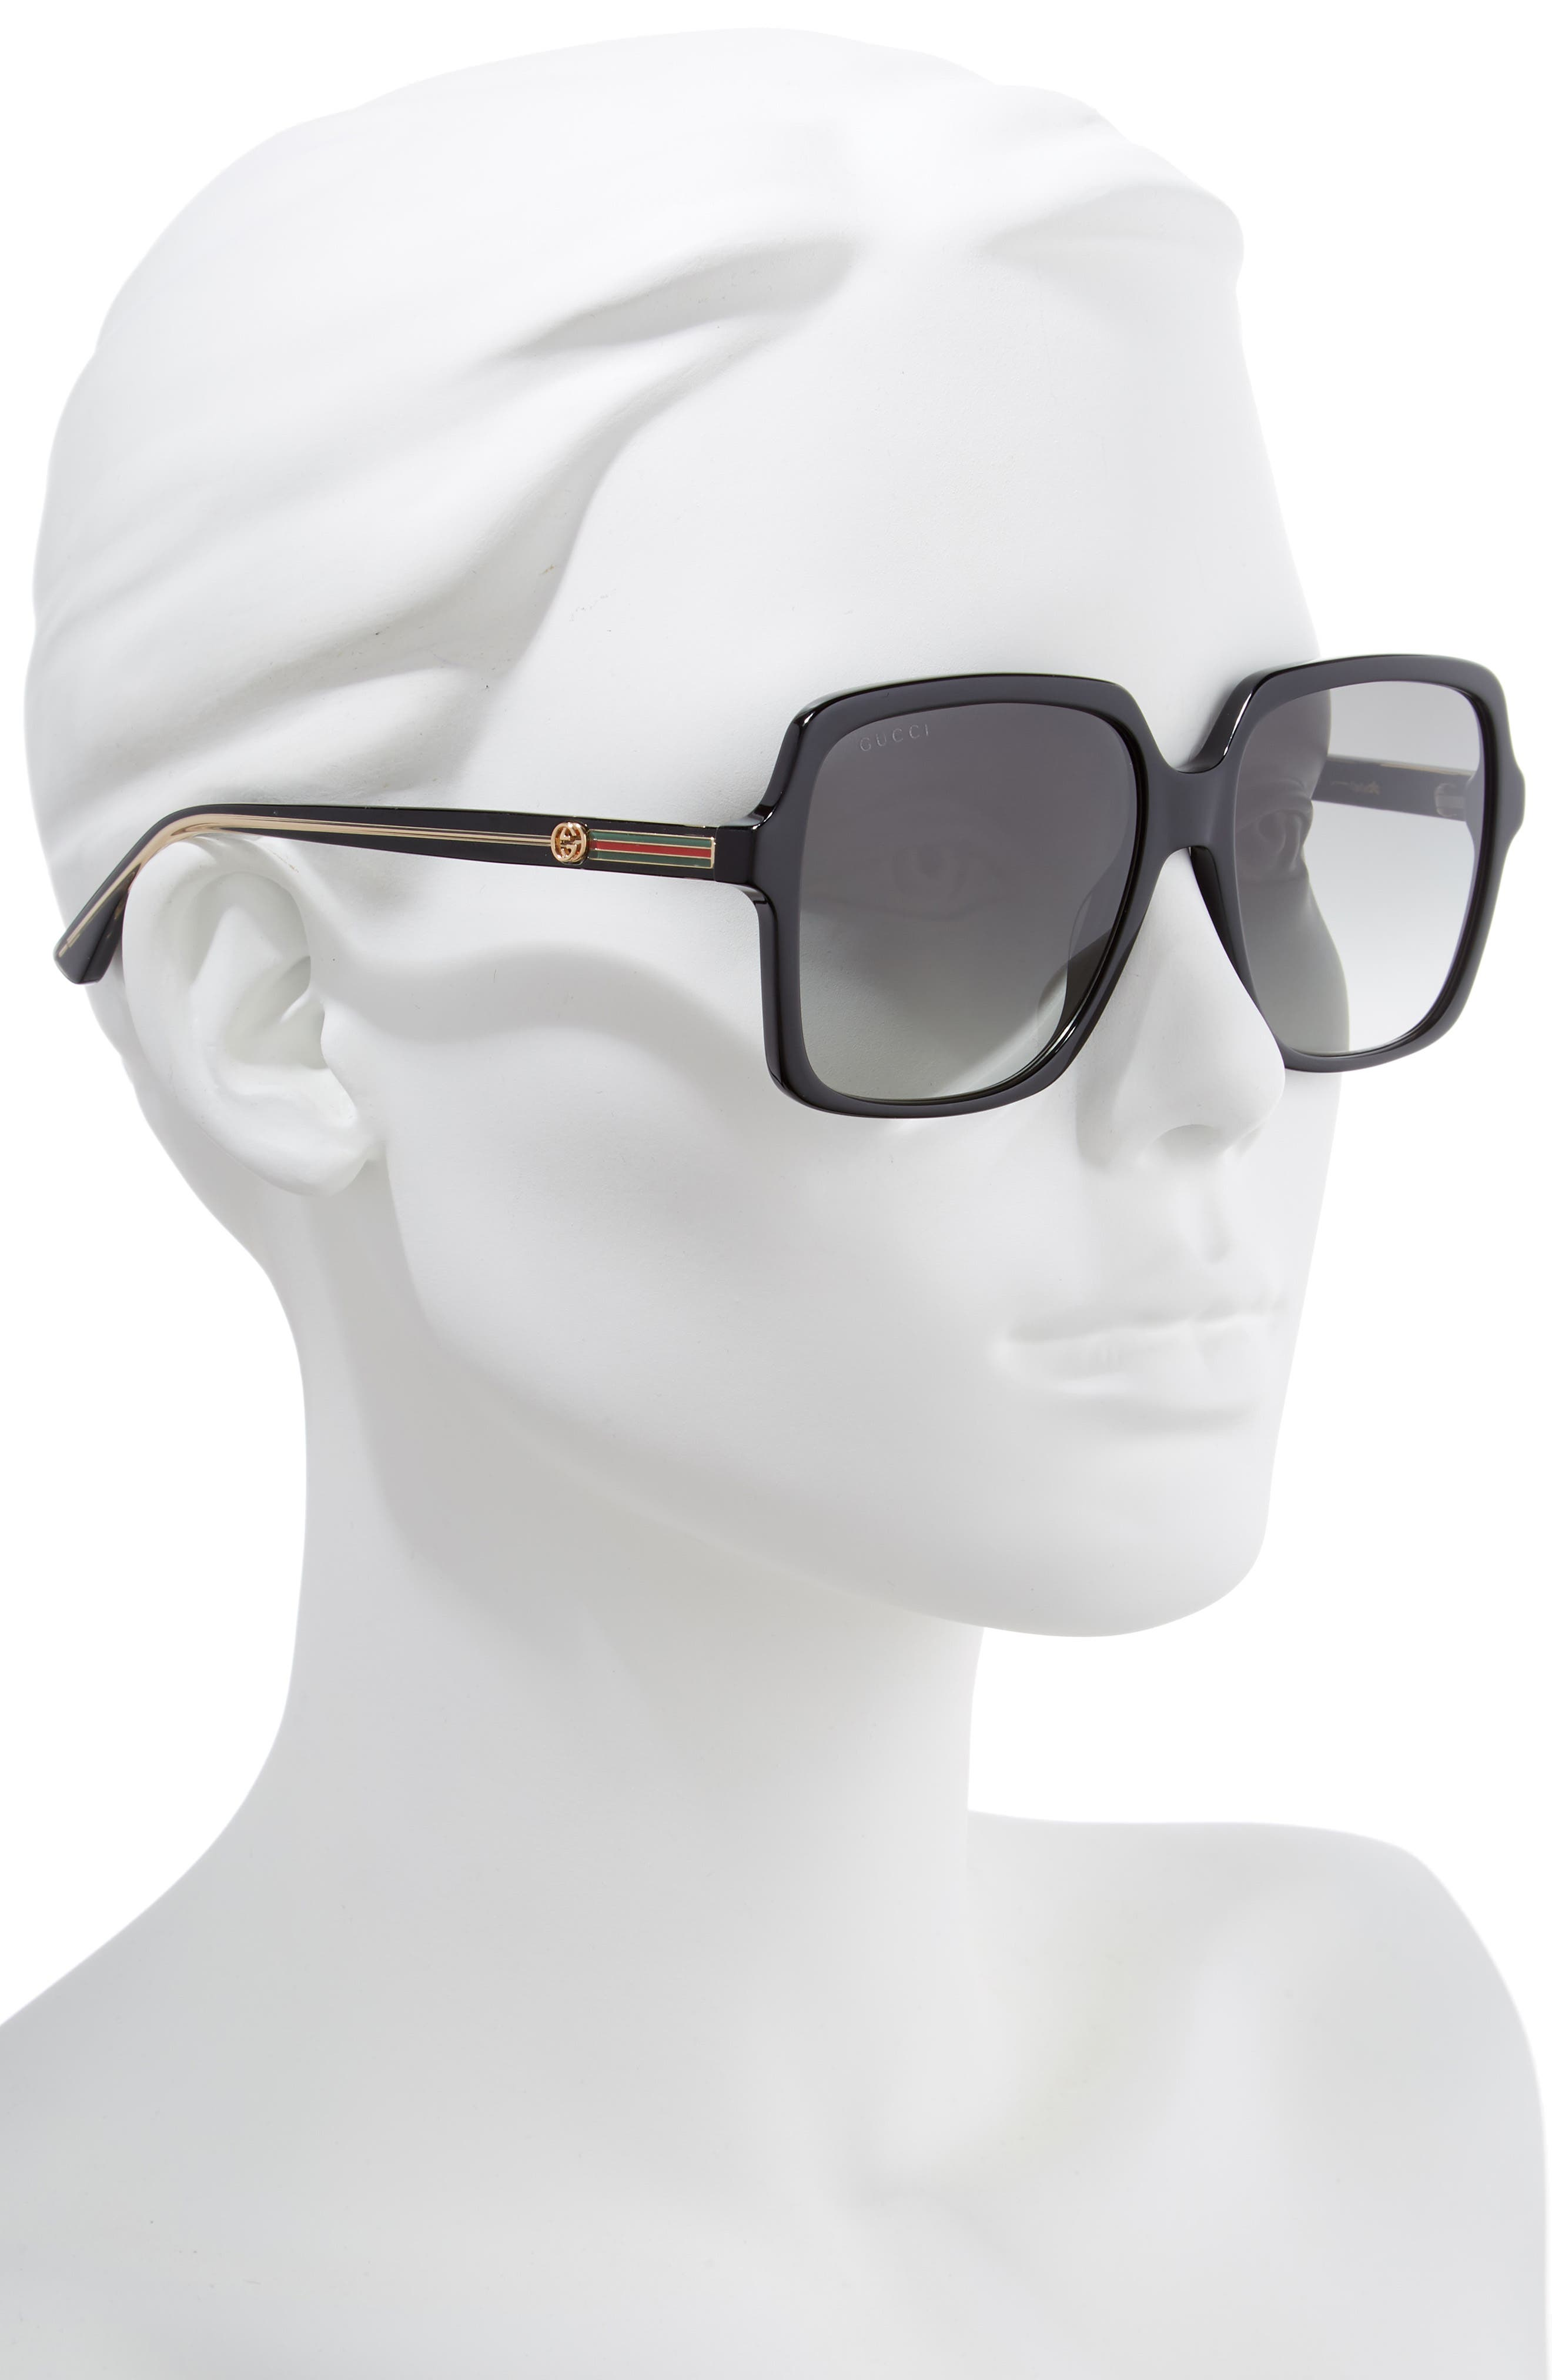 56mm Square Sunglasses,                             Alternate thumbnail 2, color,                             BLACK/ CRYSTAL/ GREY GRADIENT